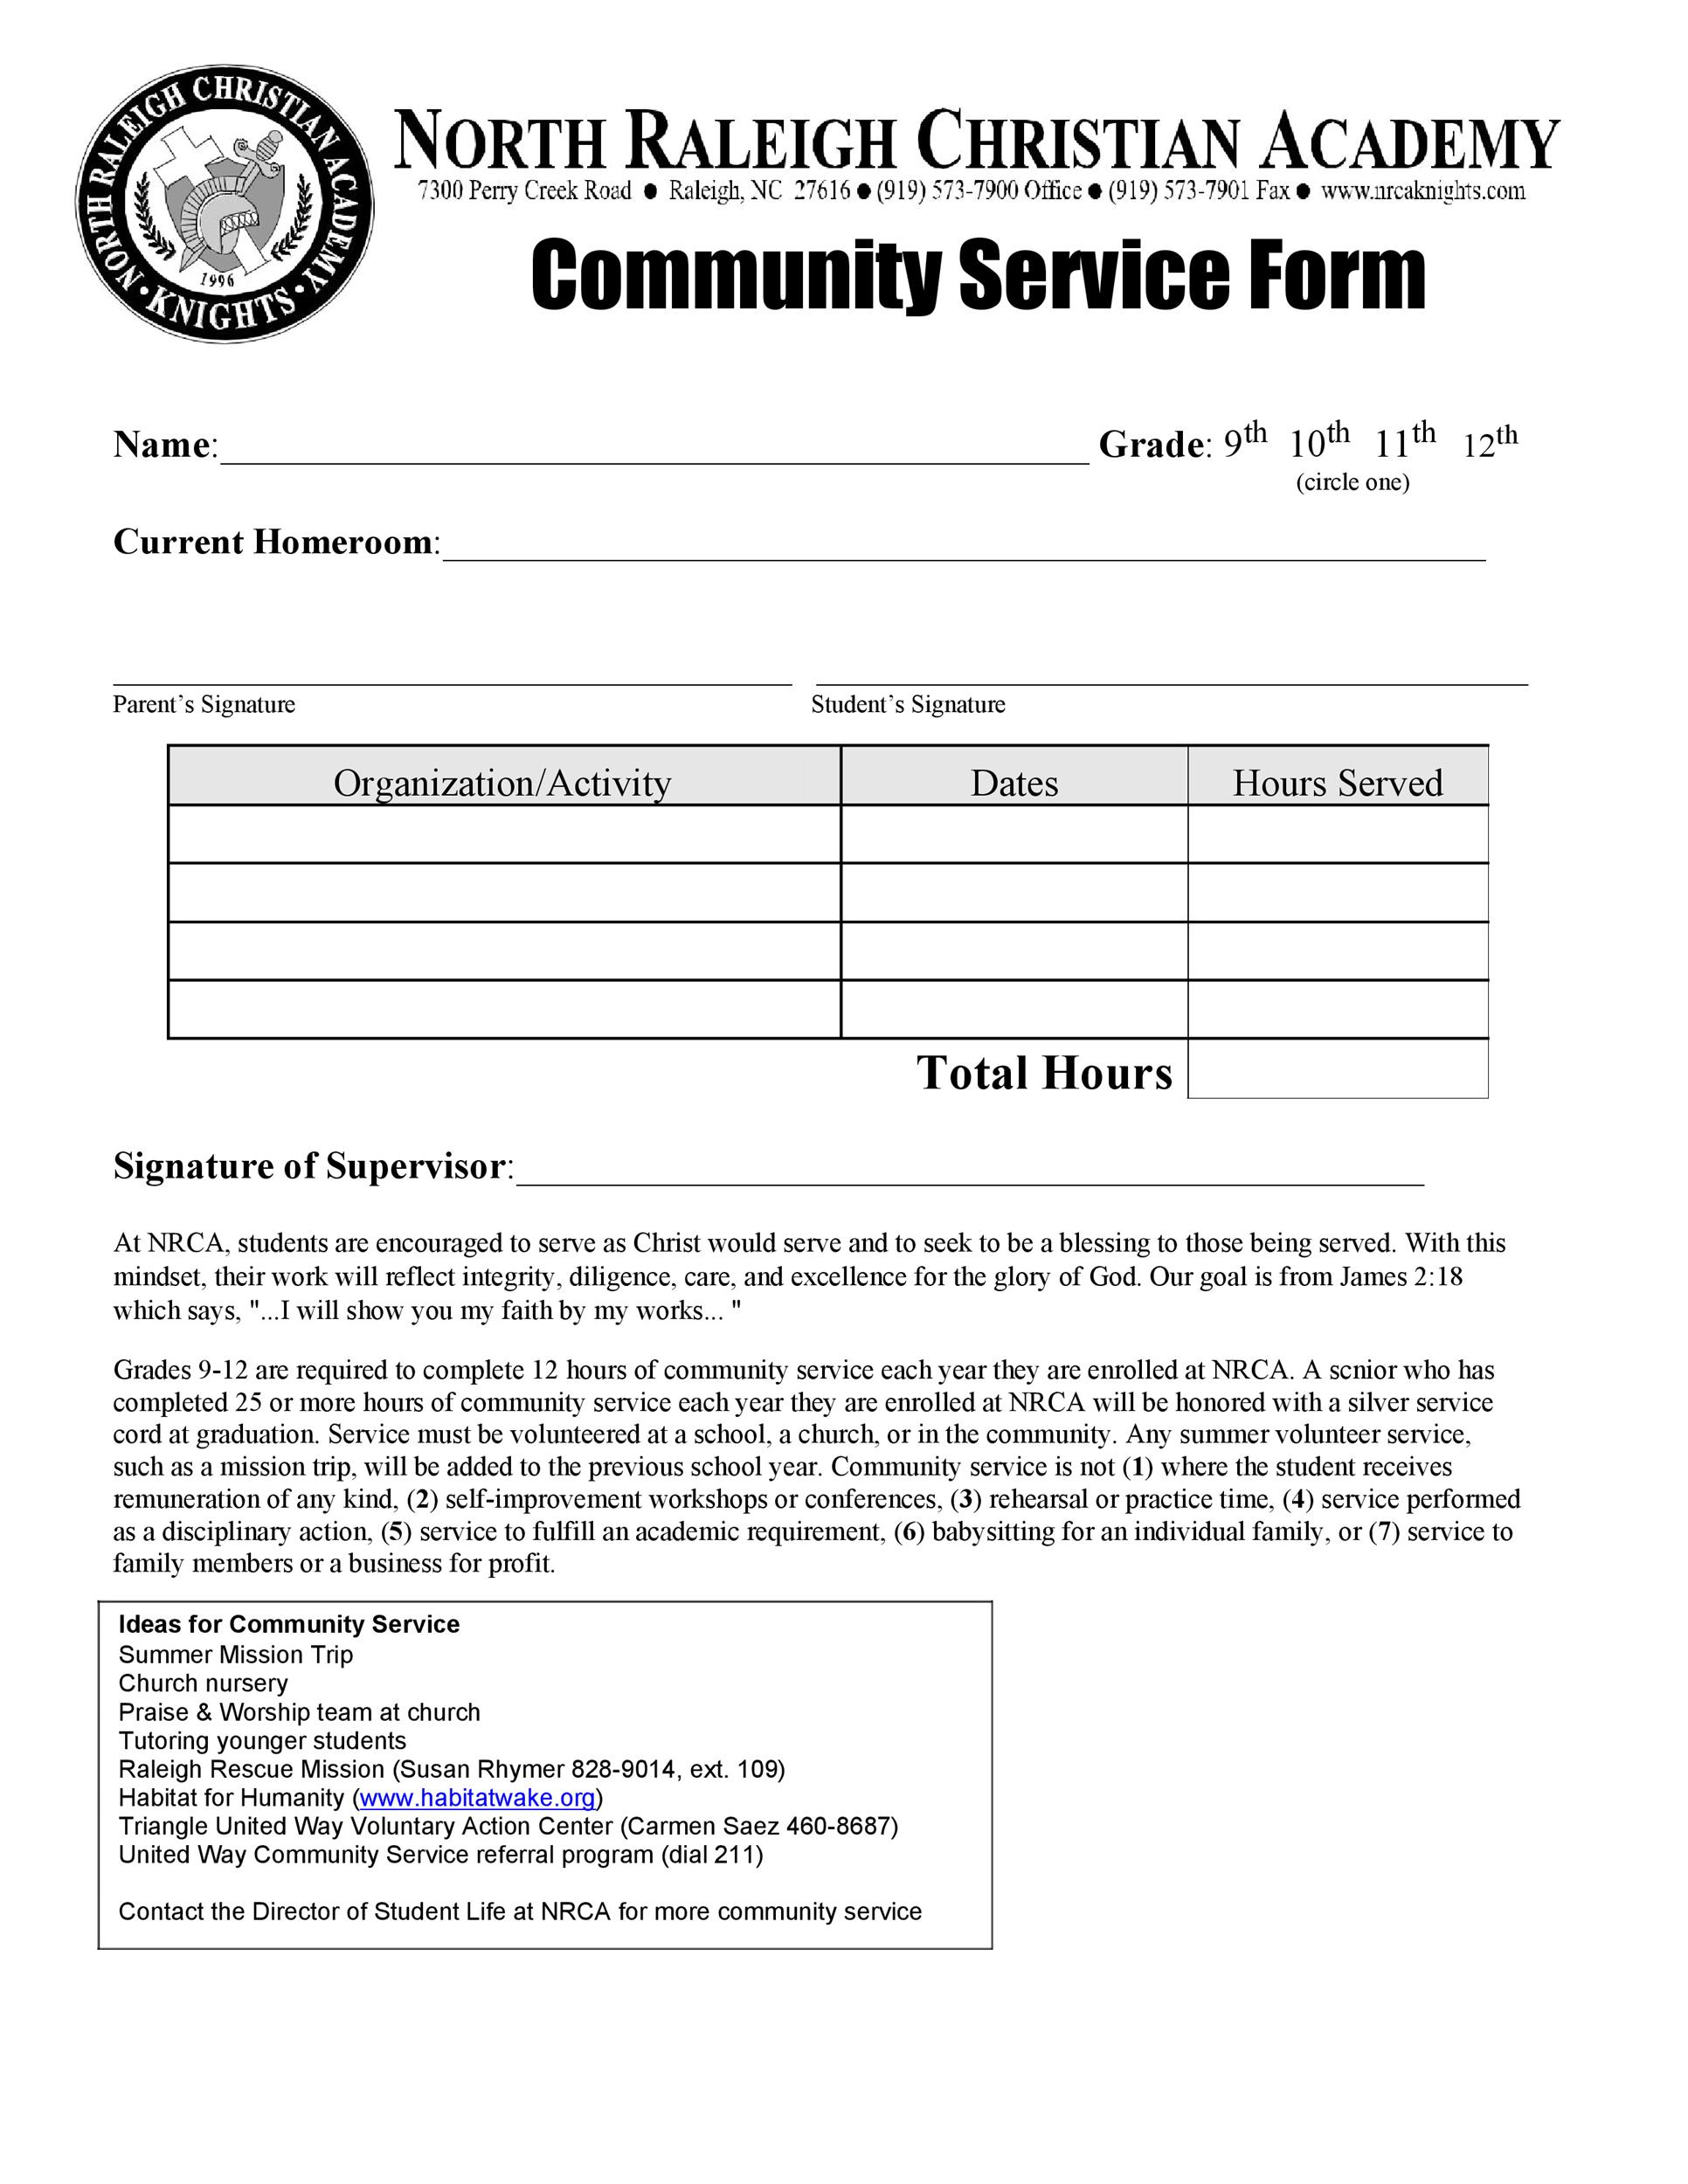 Community Service Letter Template 41